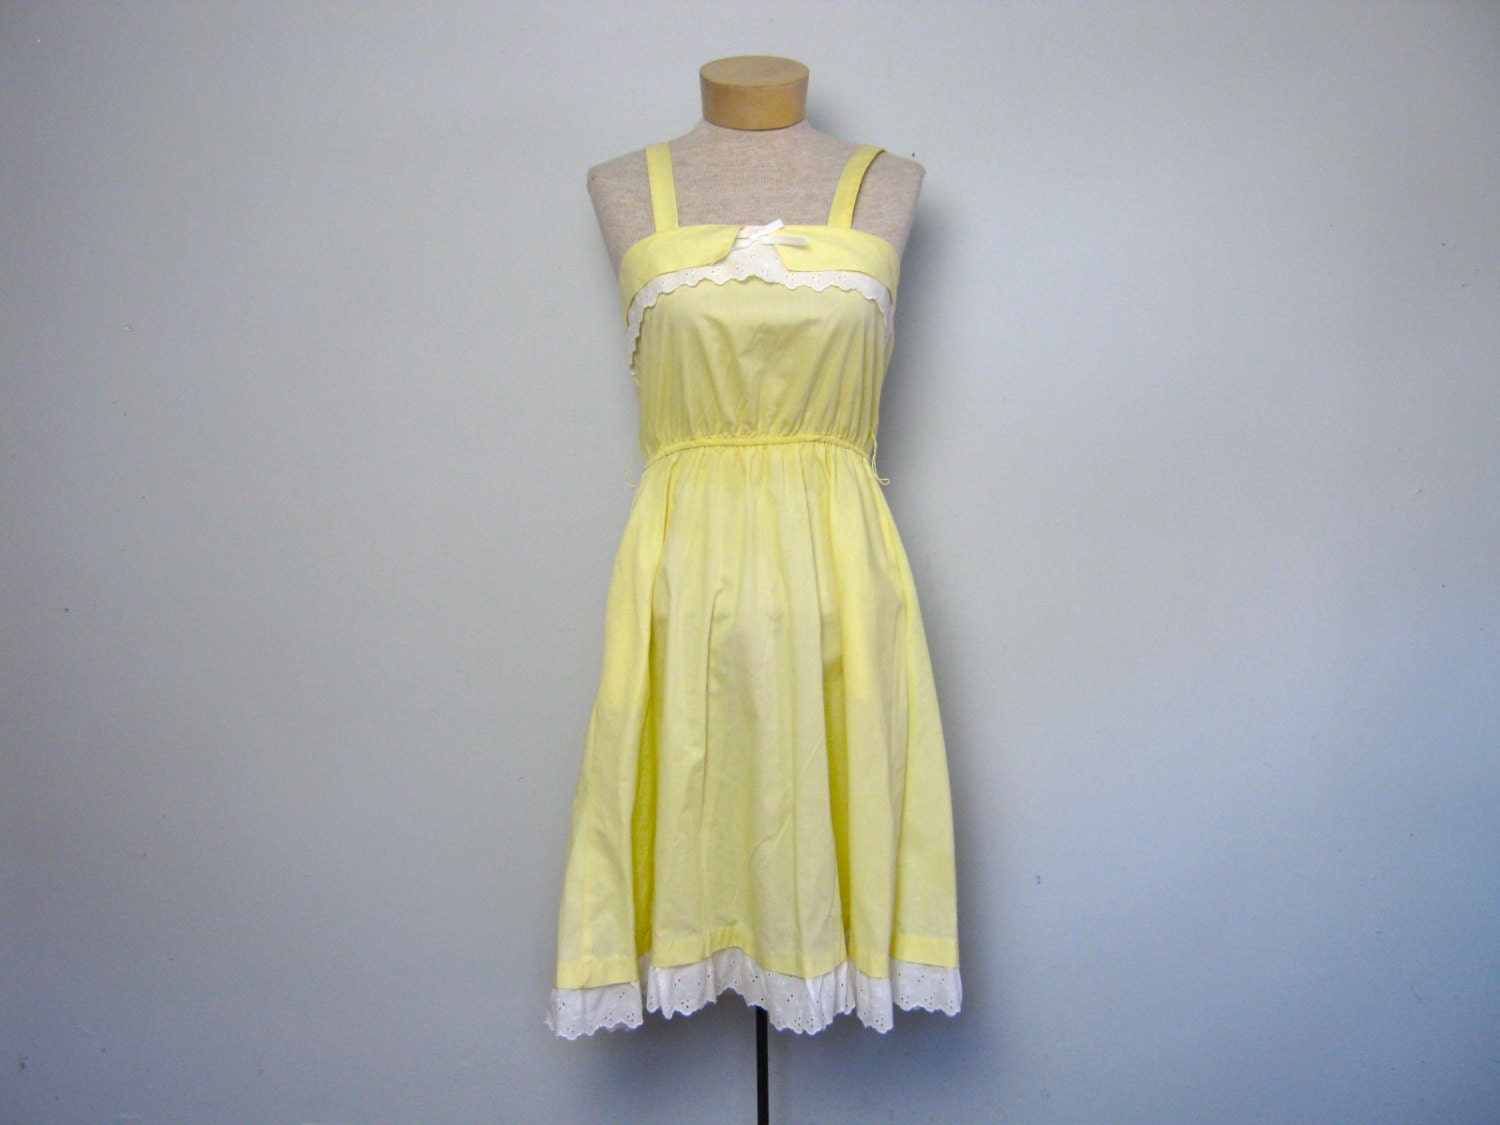 Vintage 70s pale yellow sundress